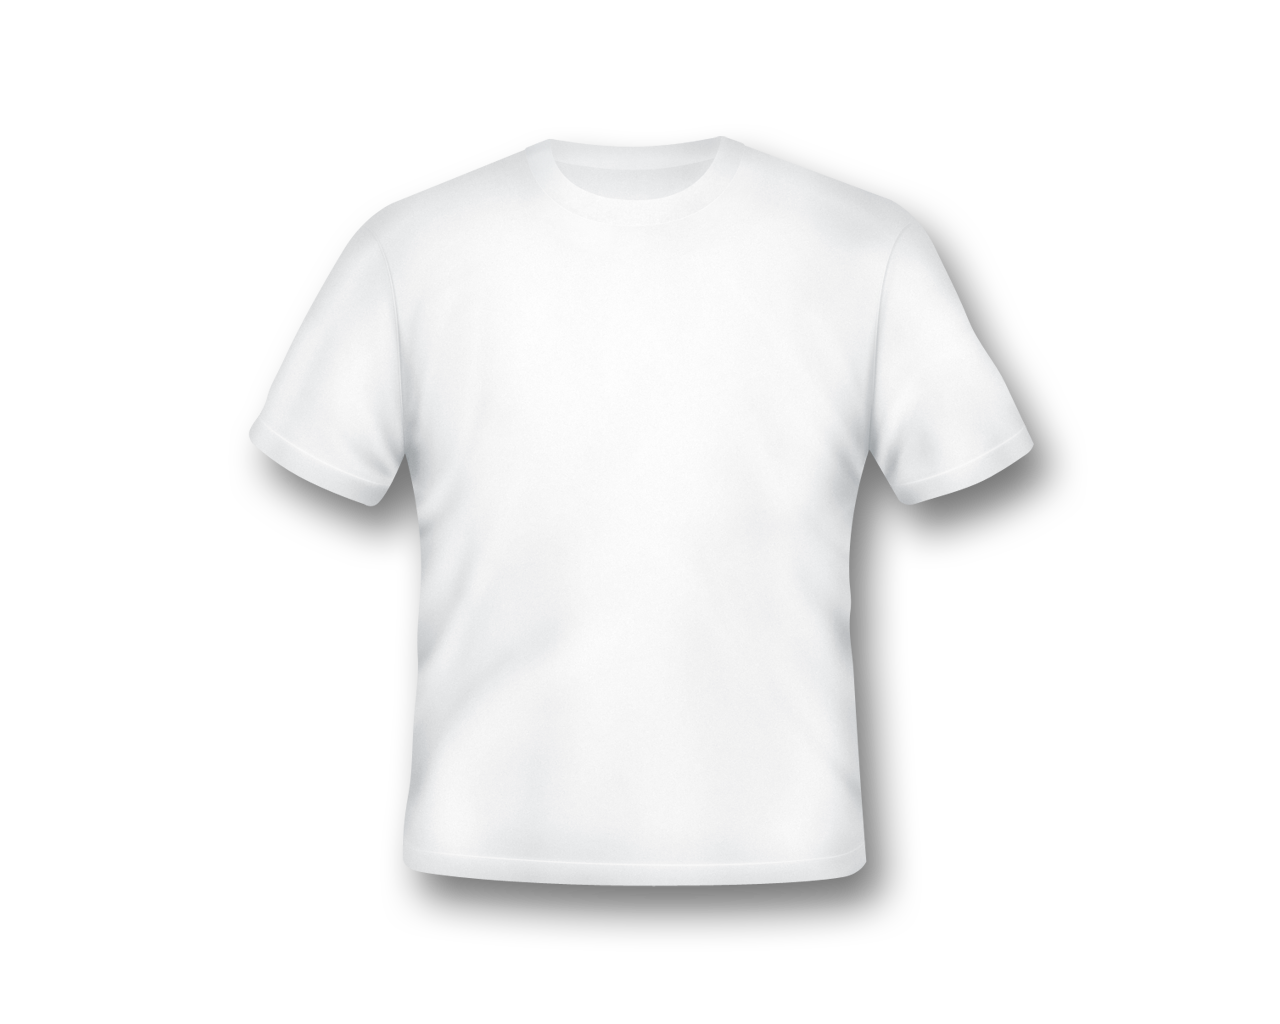 Download Blank White T Shirt Template PNG.